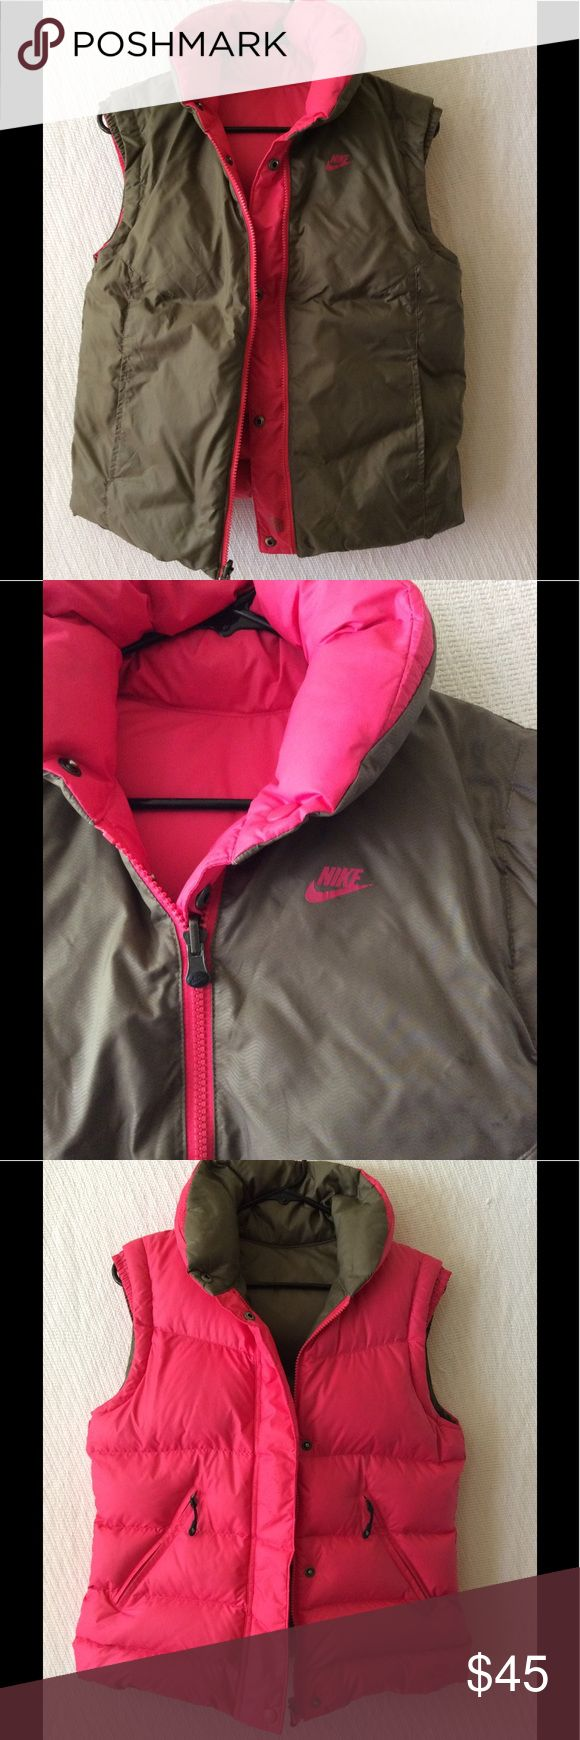 """Nike Reversible Down Feather Puffer Vest Women's Nike Reversible Down Feather Puffer Vest.  Size small; 19"""" width, 23"""" length. Outer body polyester, inner body nylon, and filled with a minimum of 75% grey duck down.  Brown on one side, dark pink on the other, this is a really cute vest.  Very warm and cozy to wear.  In good used condition! The words """"Nike"""" on the brown side are beginning to crack. Nike Jackets & Coats Vests"""